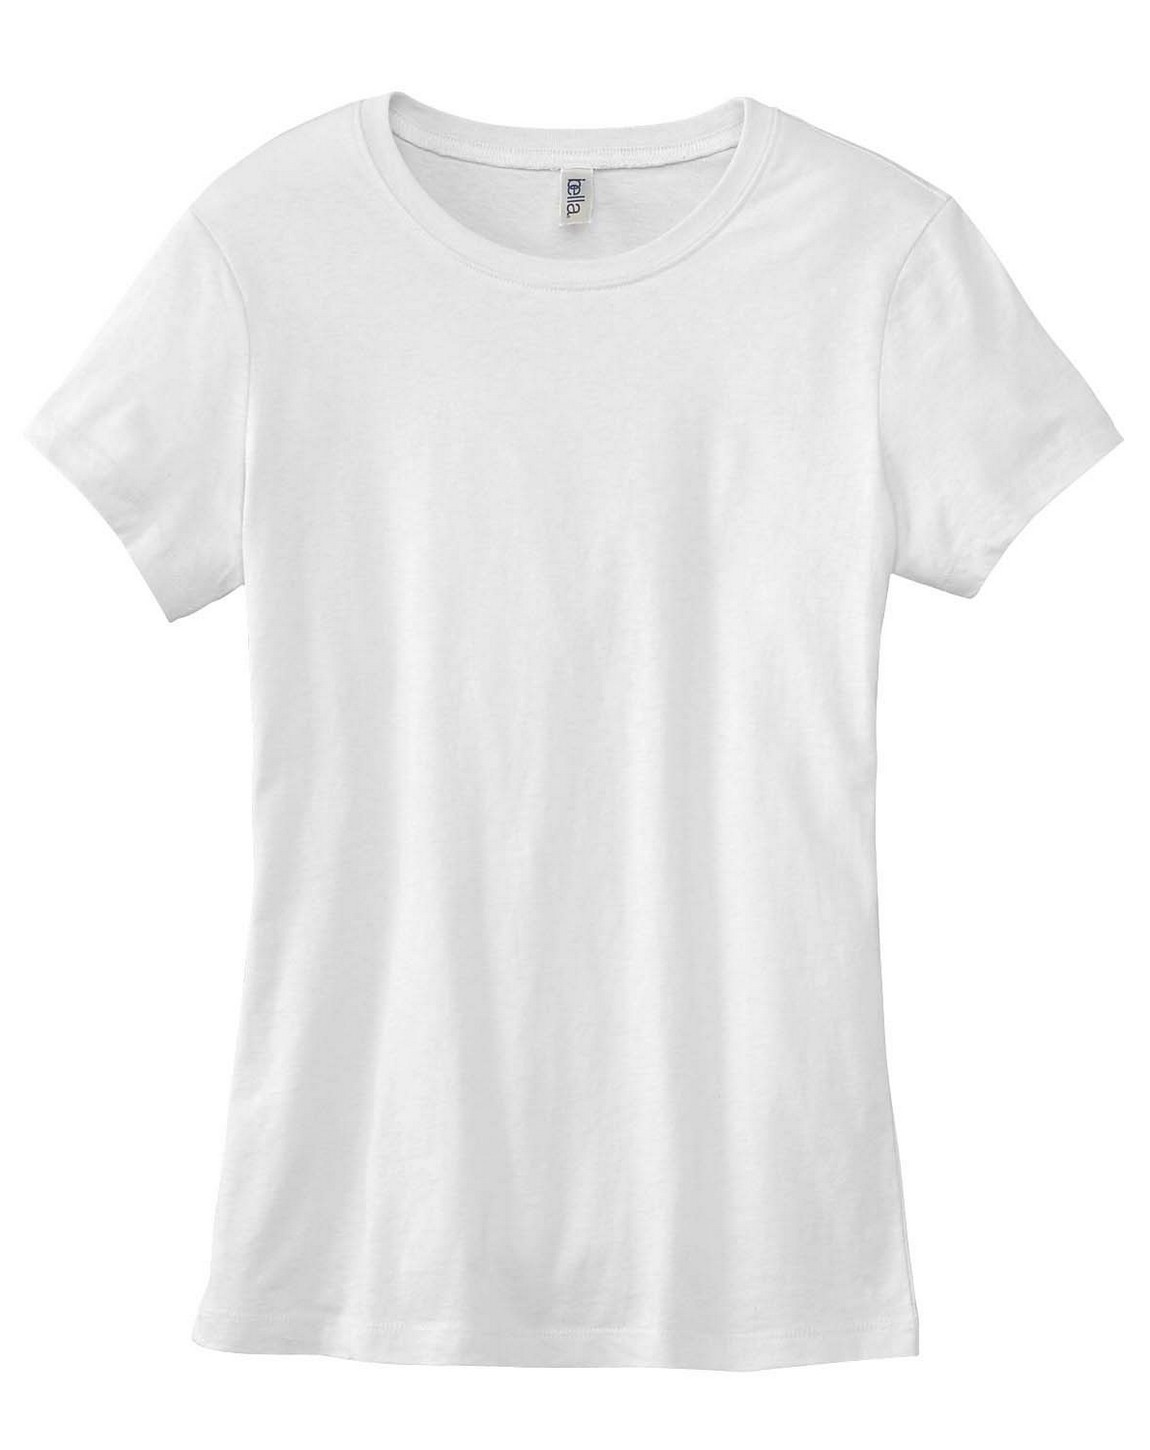 971094e91 The favorite tee (Bella / Canvas 6004) | Welcome to Print Shorty